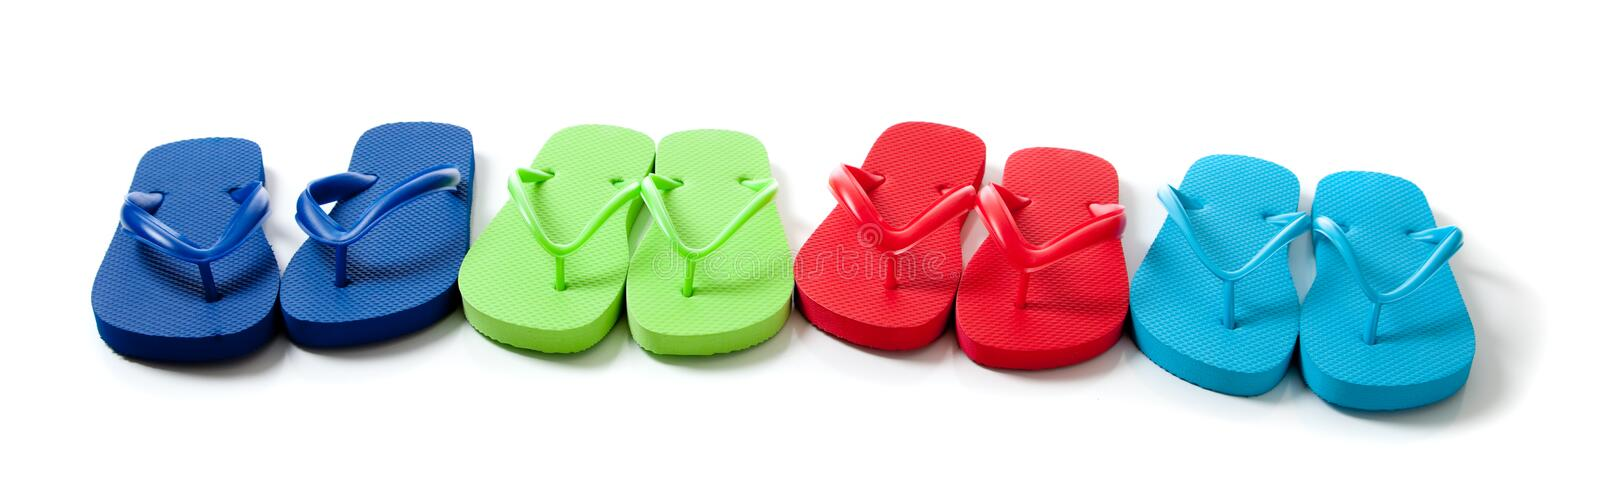 Download Colored Flipflops On A White Background Stock Image - Image: 13900949